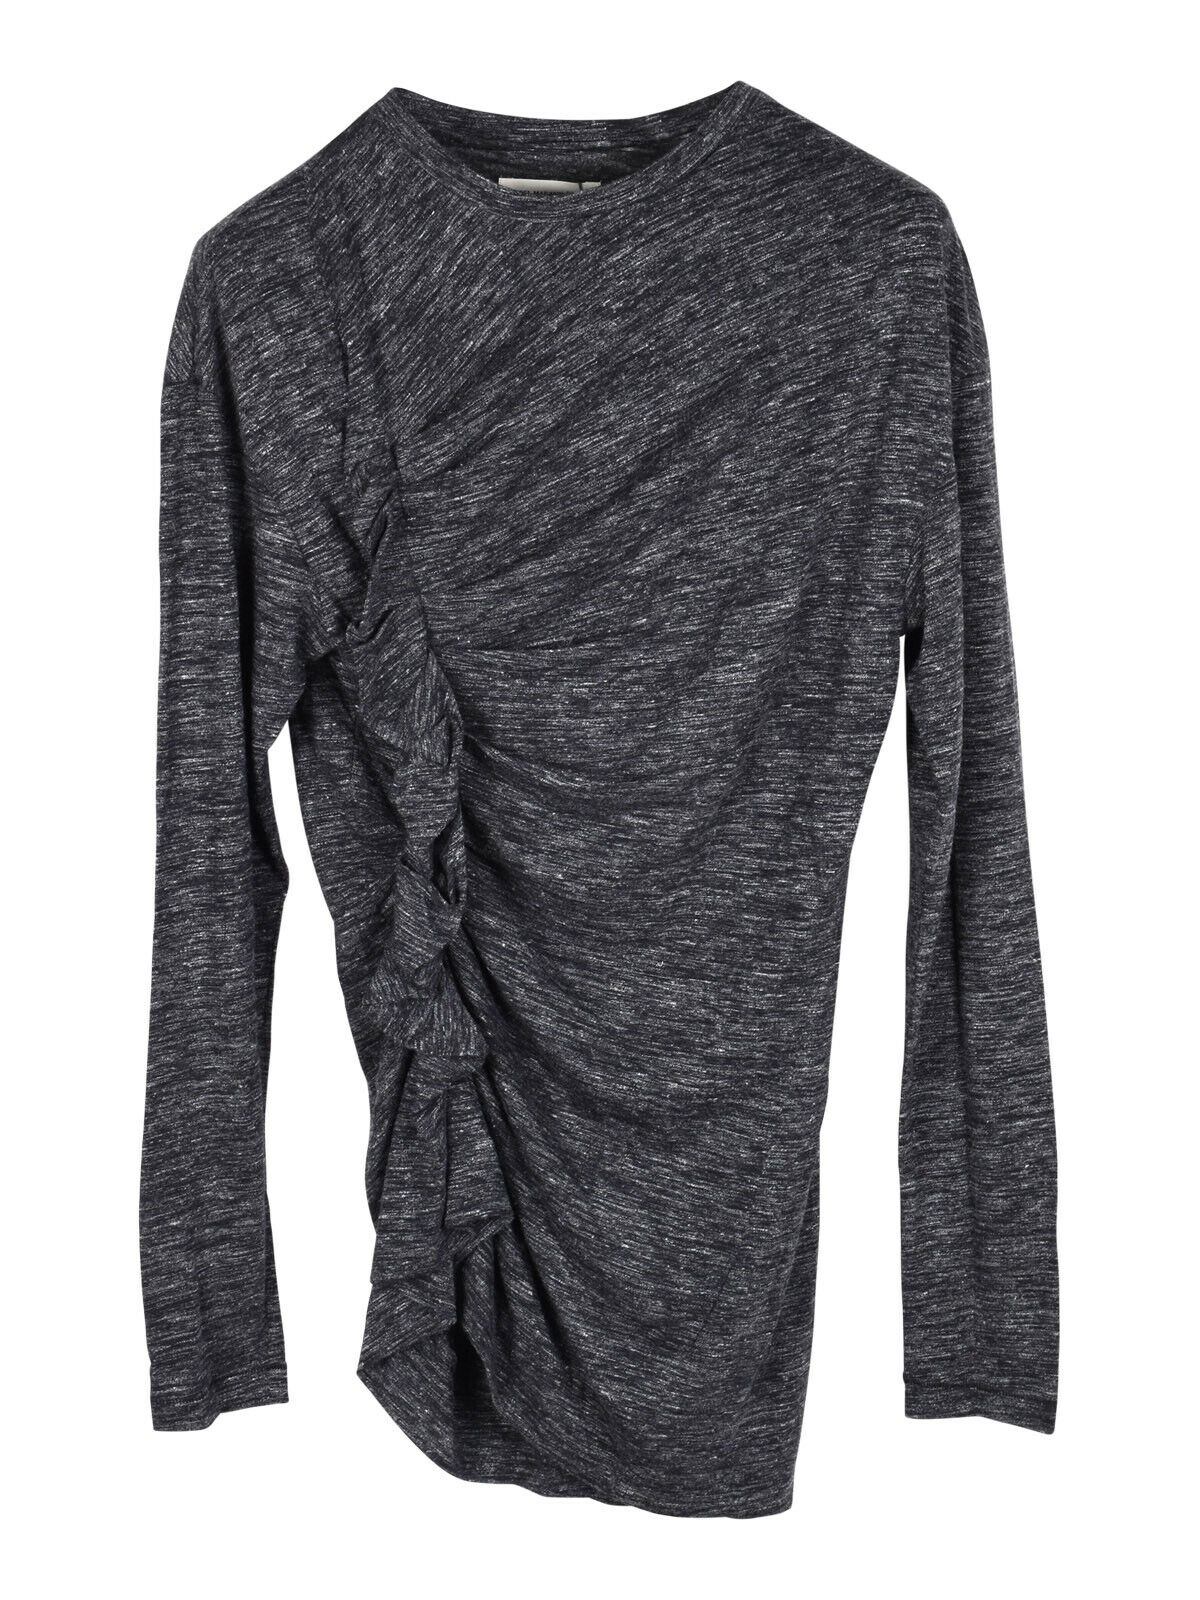 Isabel Marant Etoile grau Malo top with side ruffle